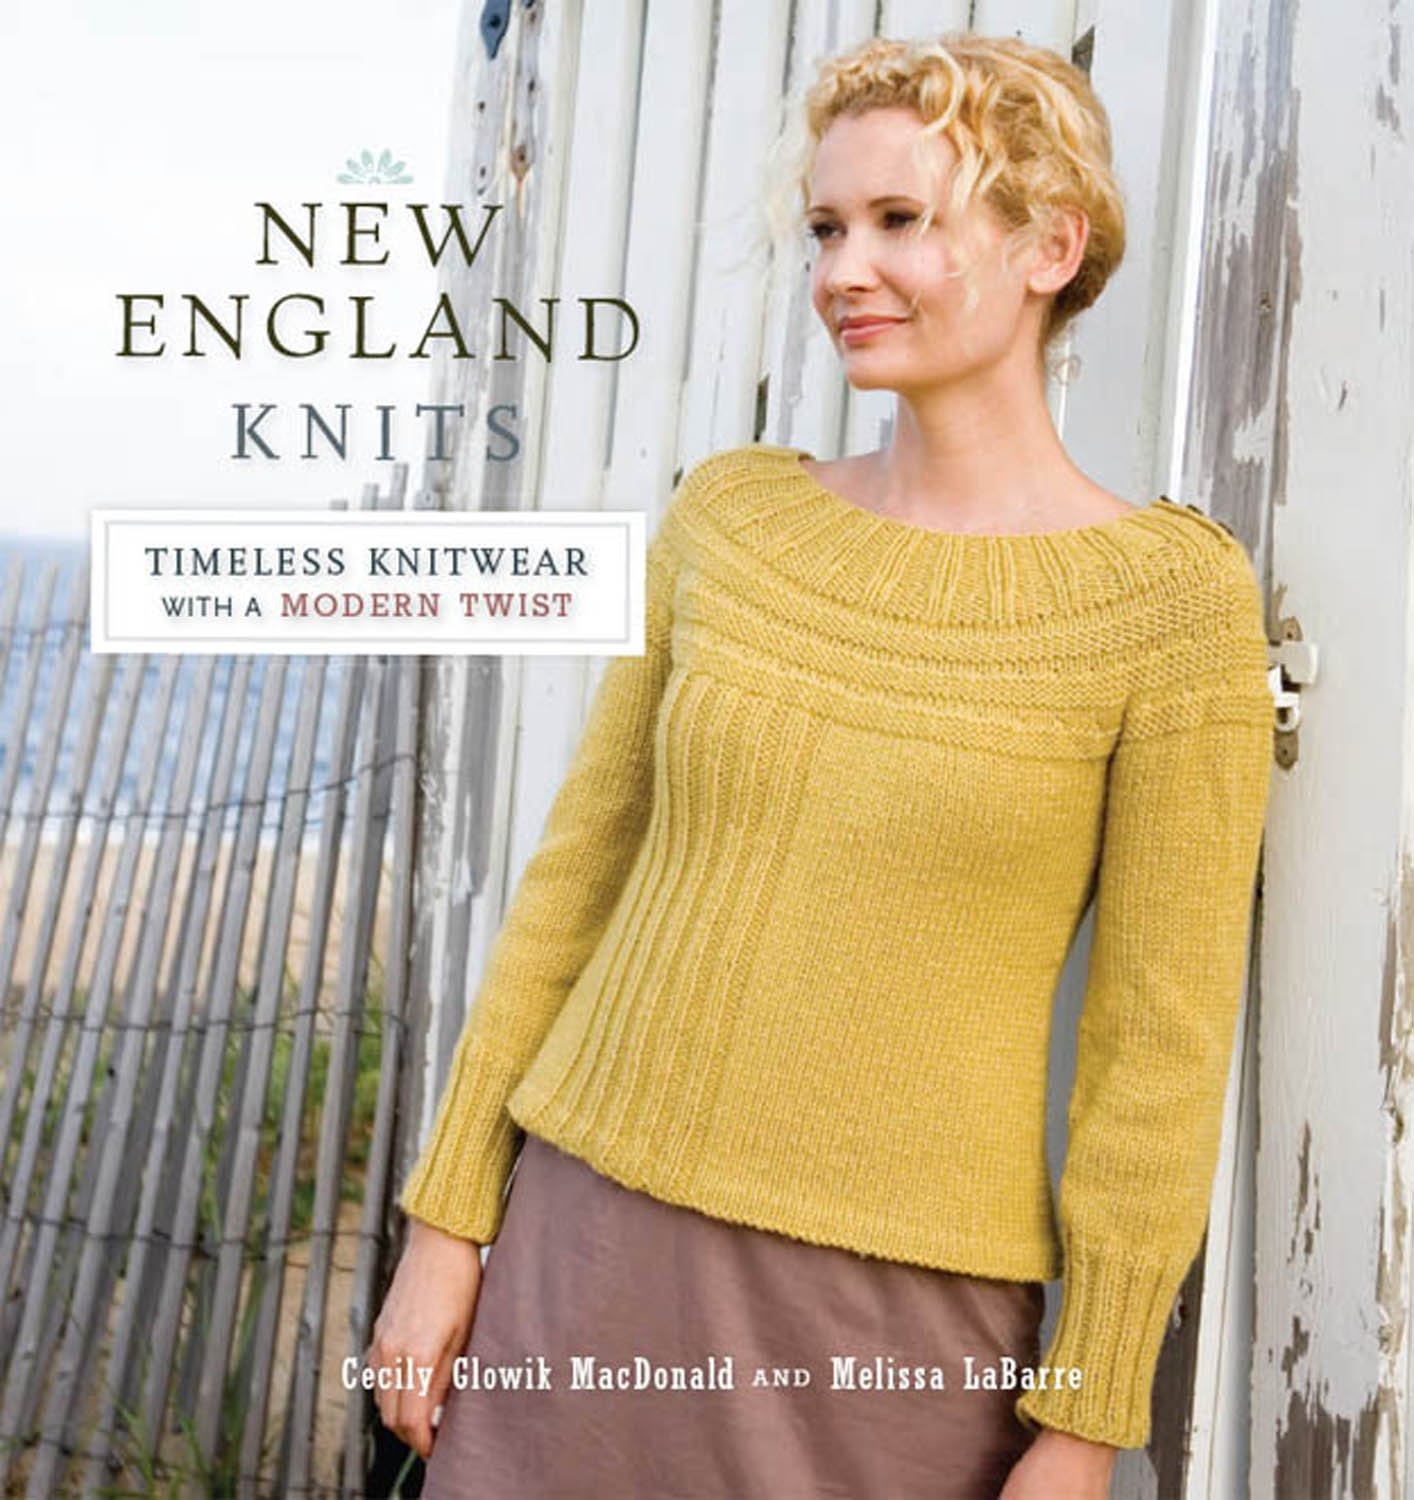 New England Knits Timeless Knitwear With A Modern Twist Cecily